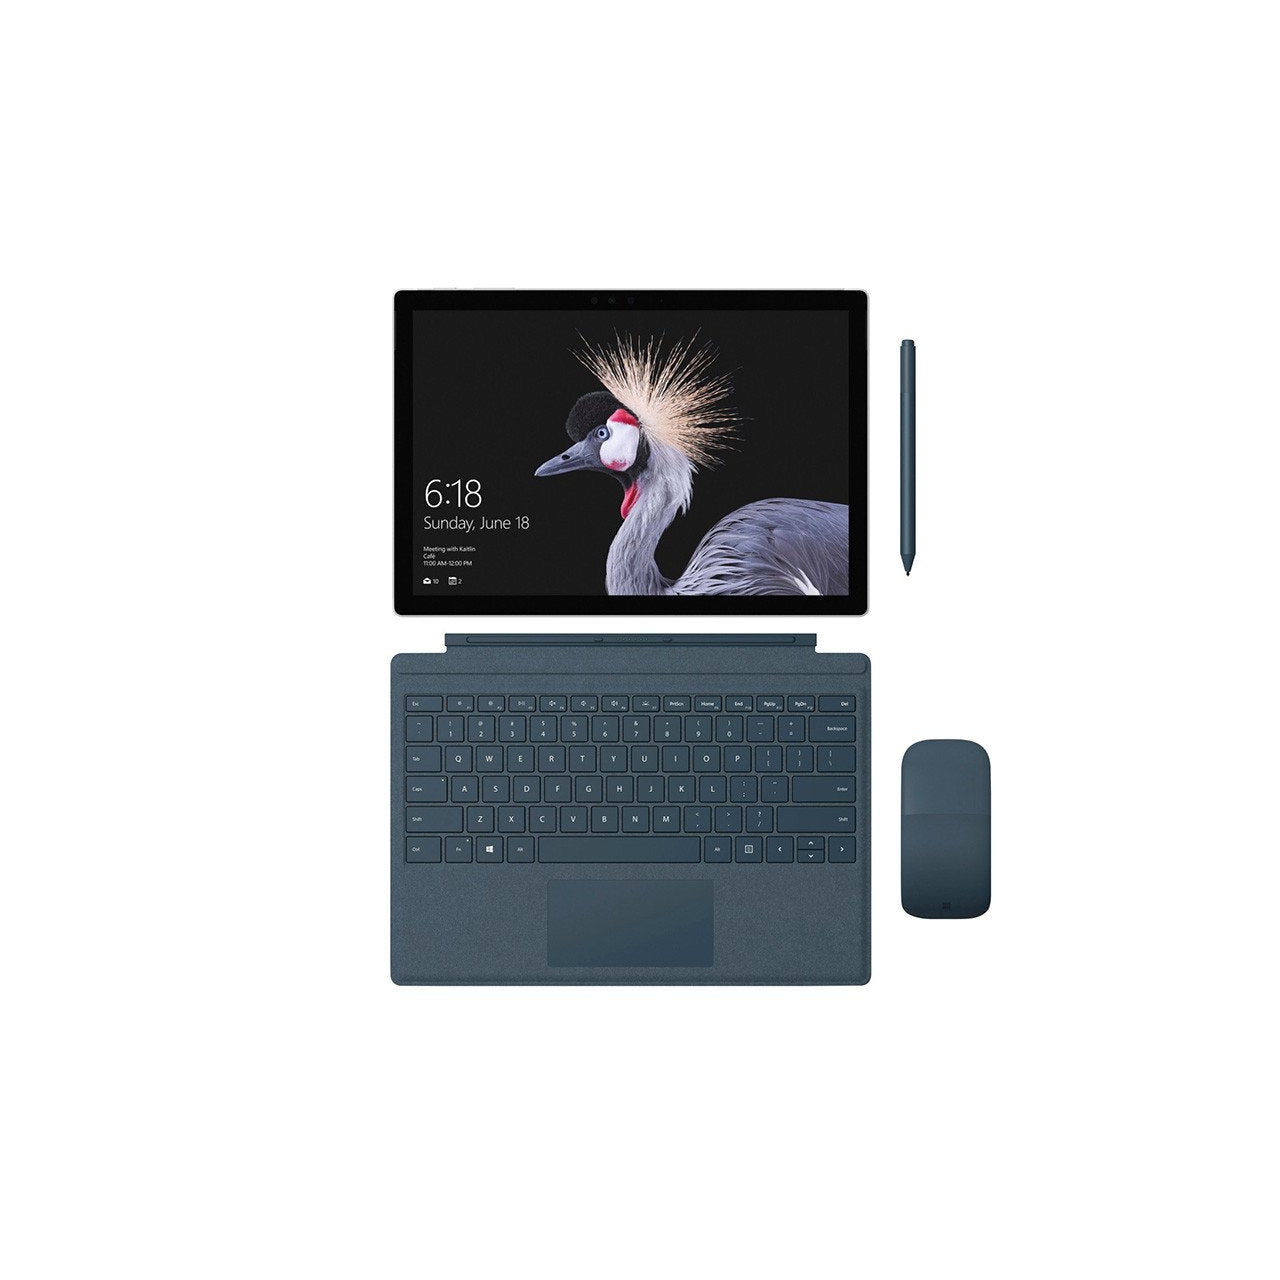 Microsoft Surface Pro 2017 I7 8gb 256gb Special Import